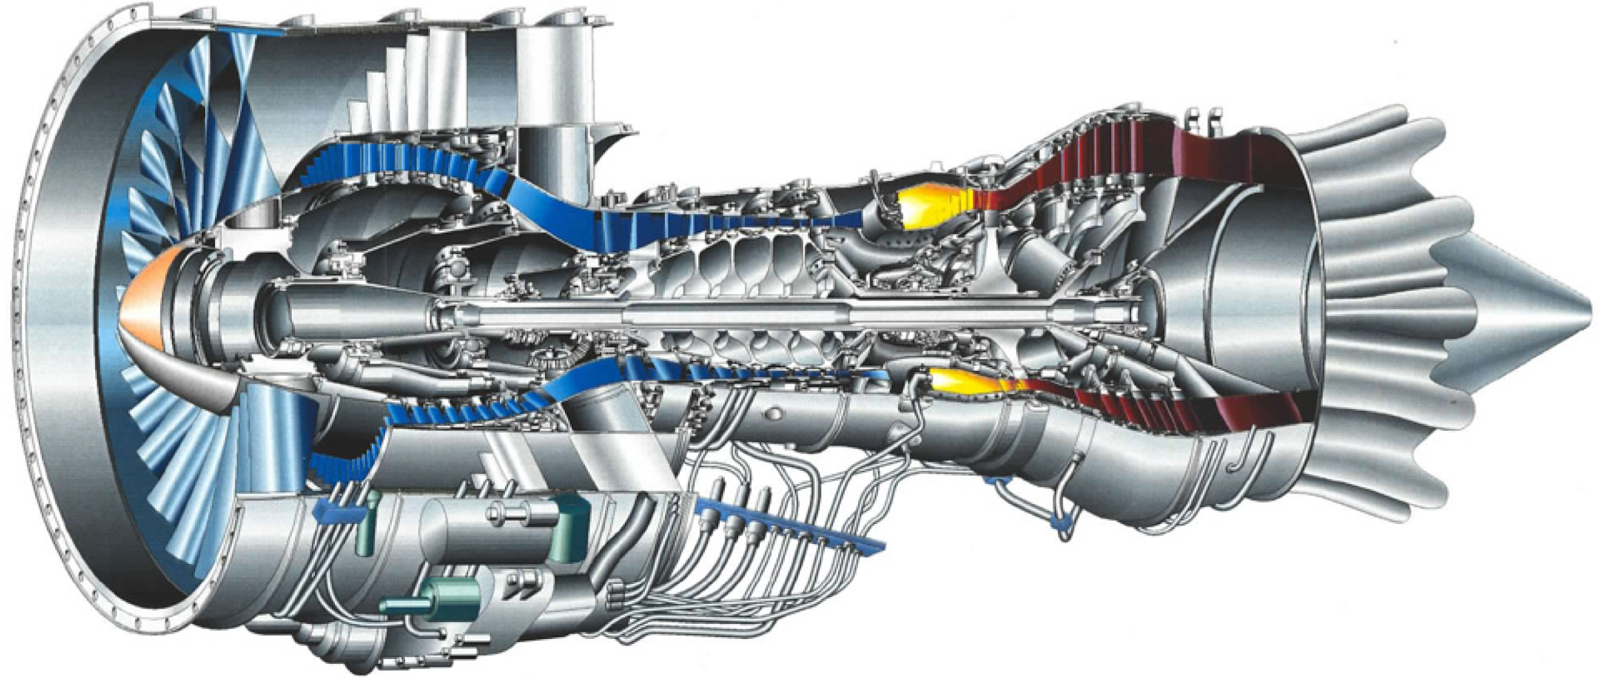 11589842 Gr180 Turbine Drawings furthermore 2794131 32802706896 as well Stock Photos Helicopter Turbine Engine Gas Cowling Opened Image33927943 furthermore 32821540606 as well . on rc helicopter motor